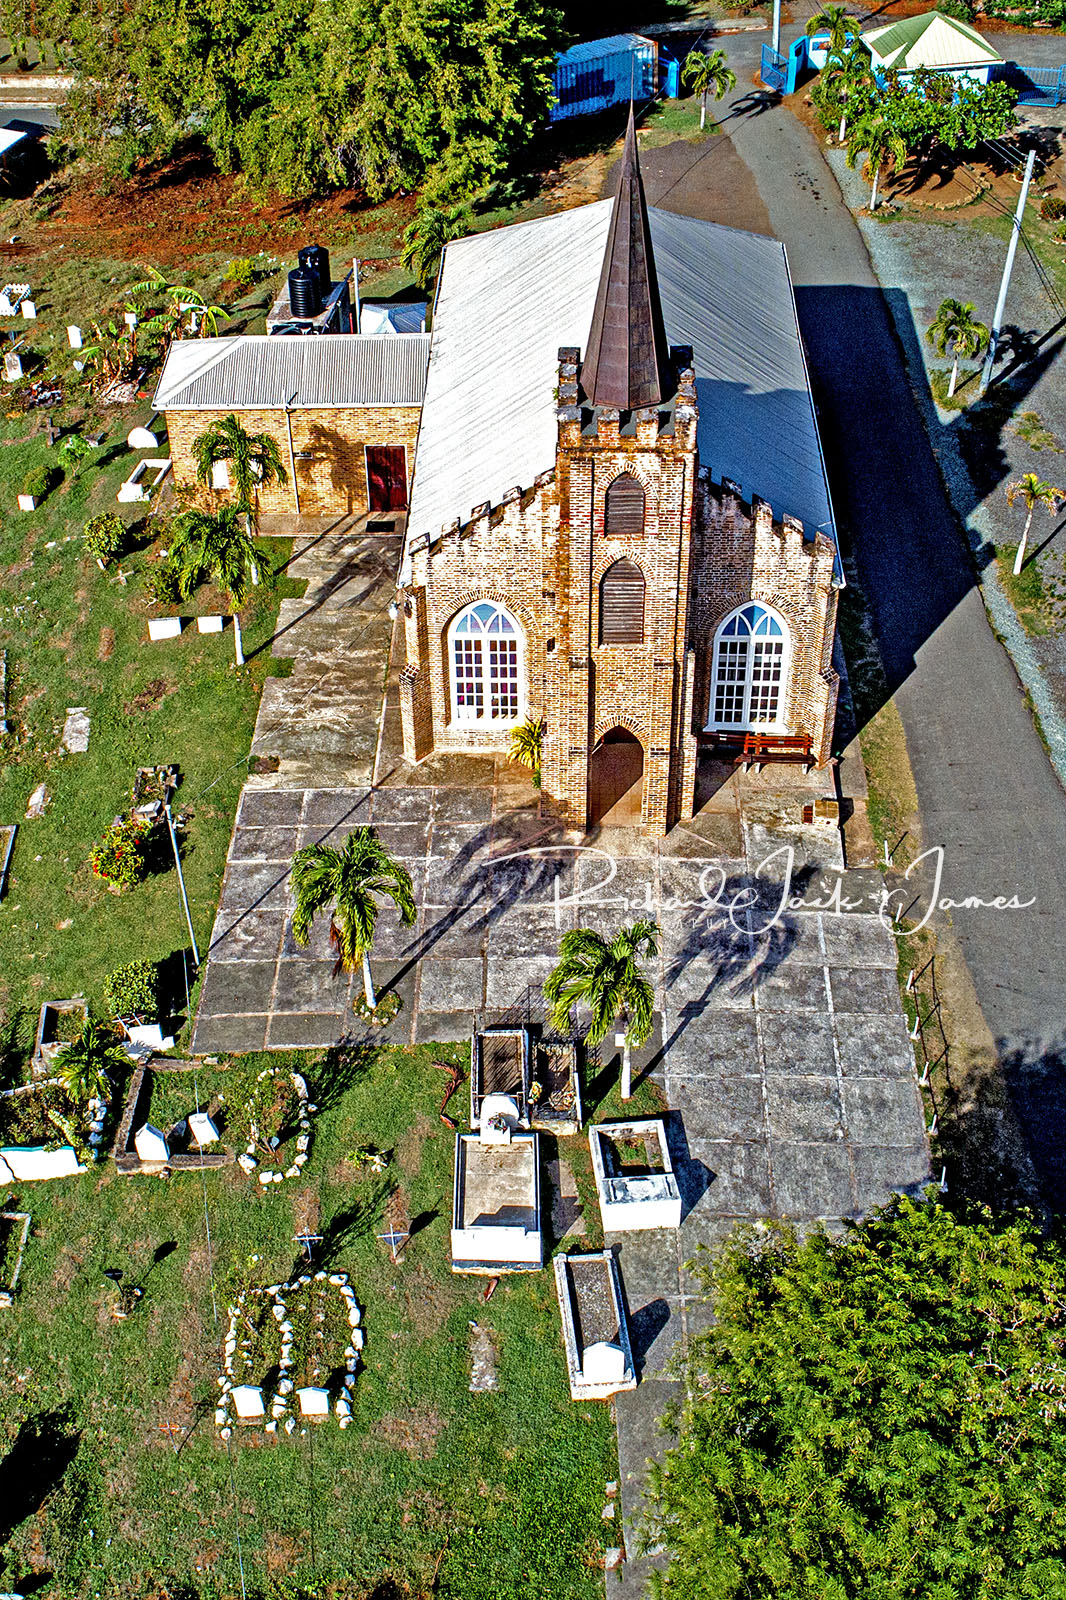 St. Patrick Anglican Church